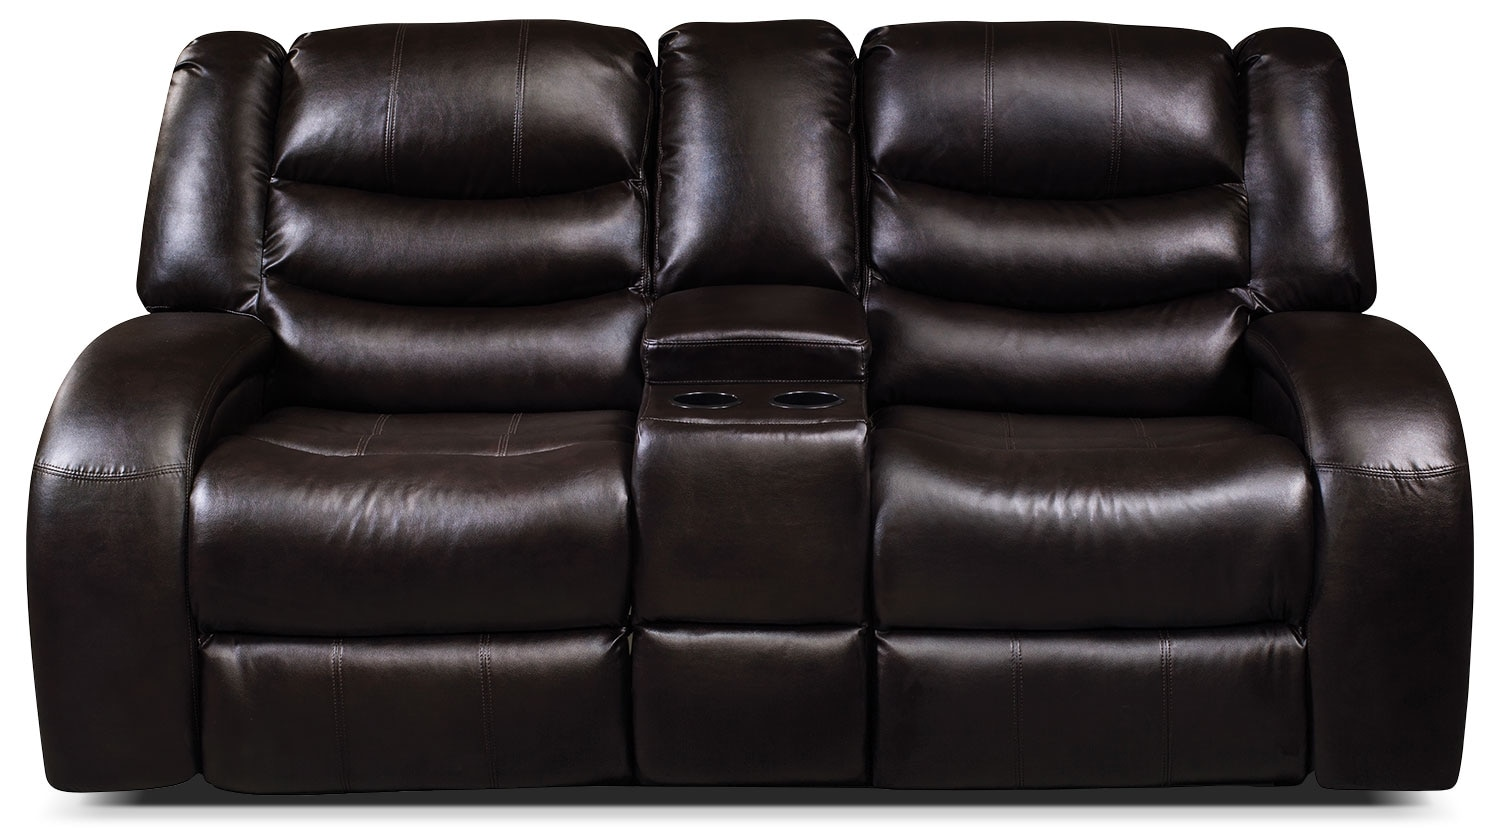 Living Room Furniture - Angus Bonded Leather Power Reclining Loveseat with Console – Dark Brown